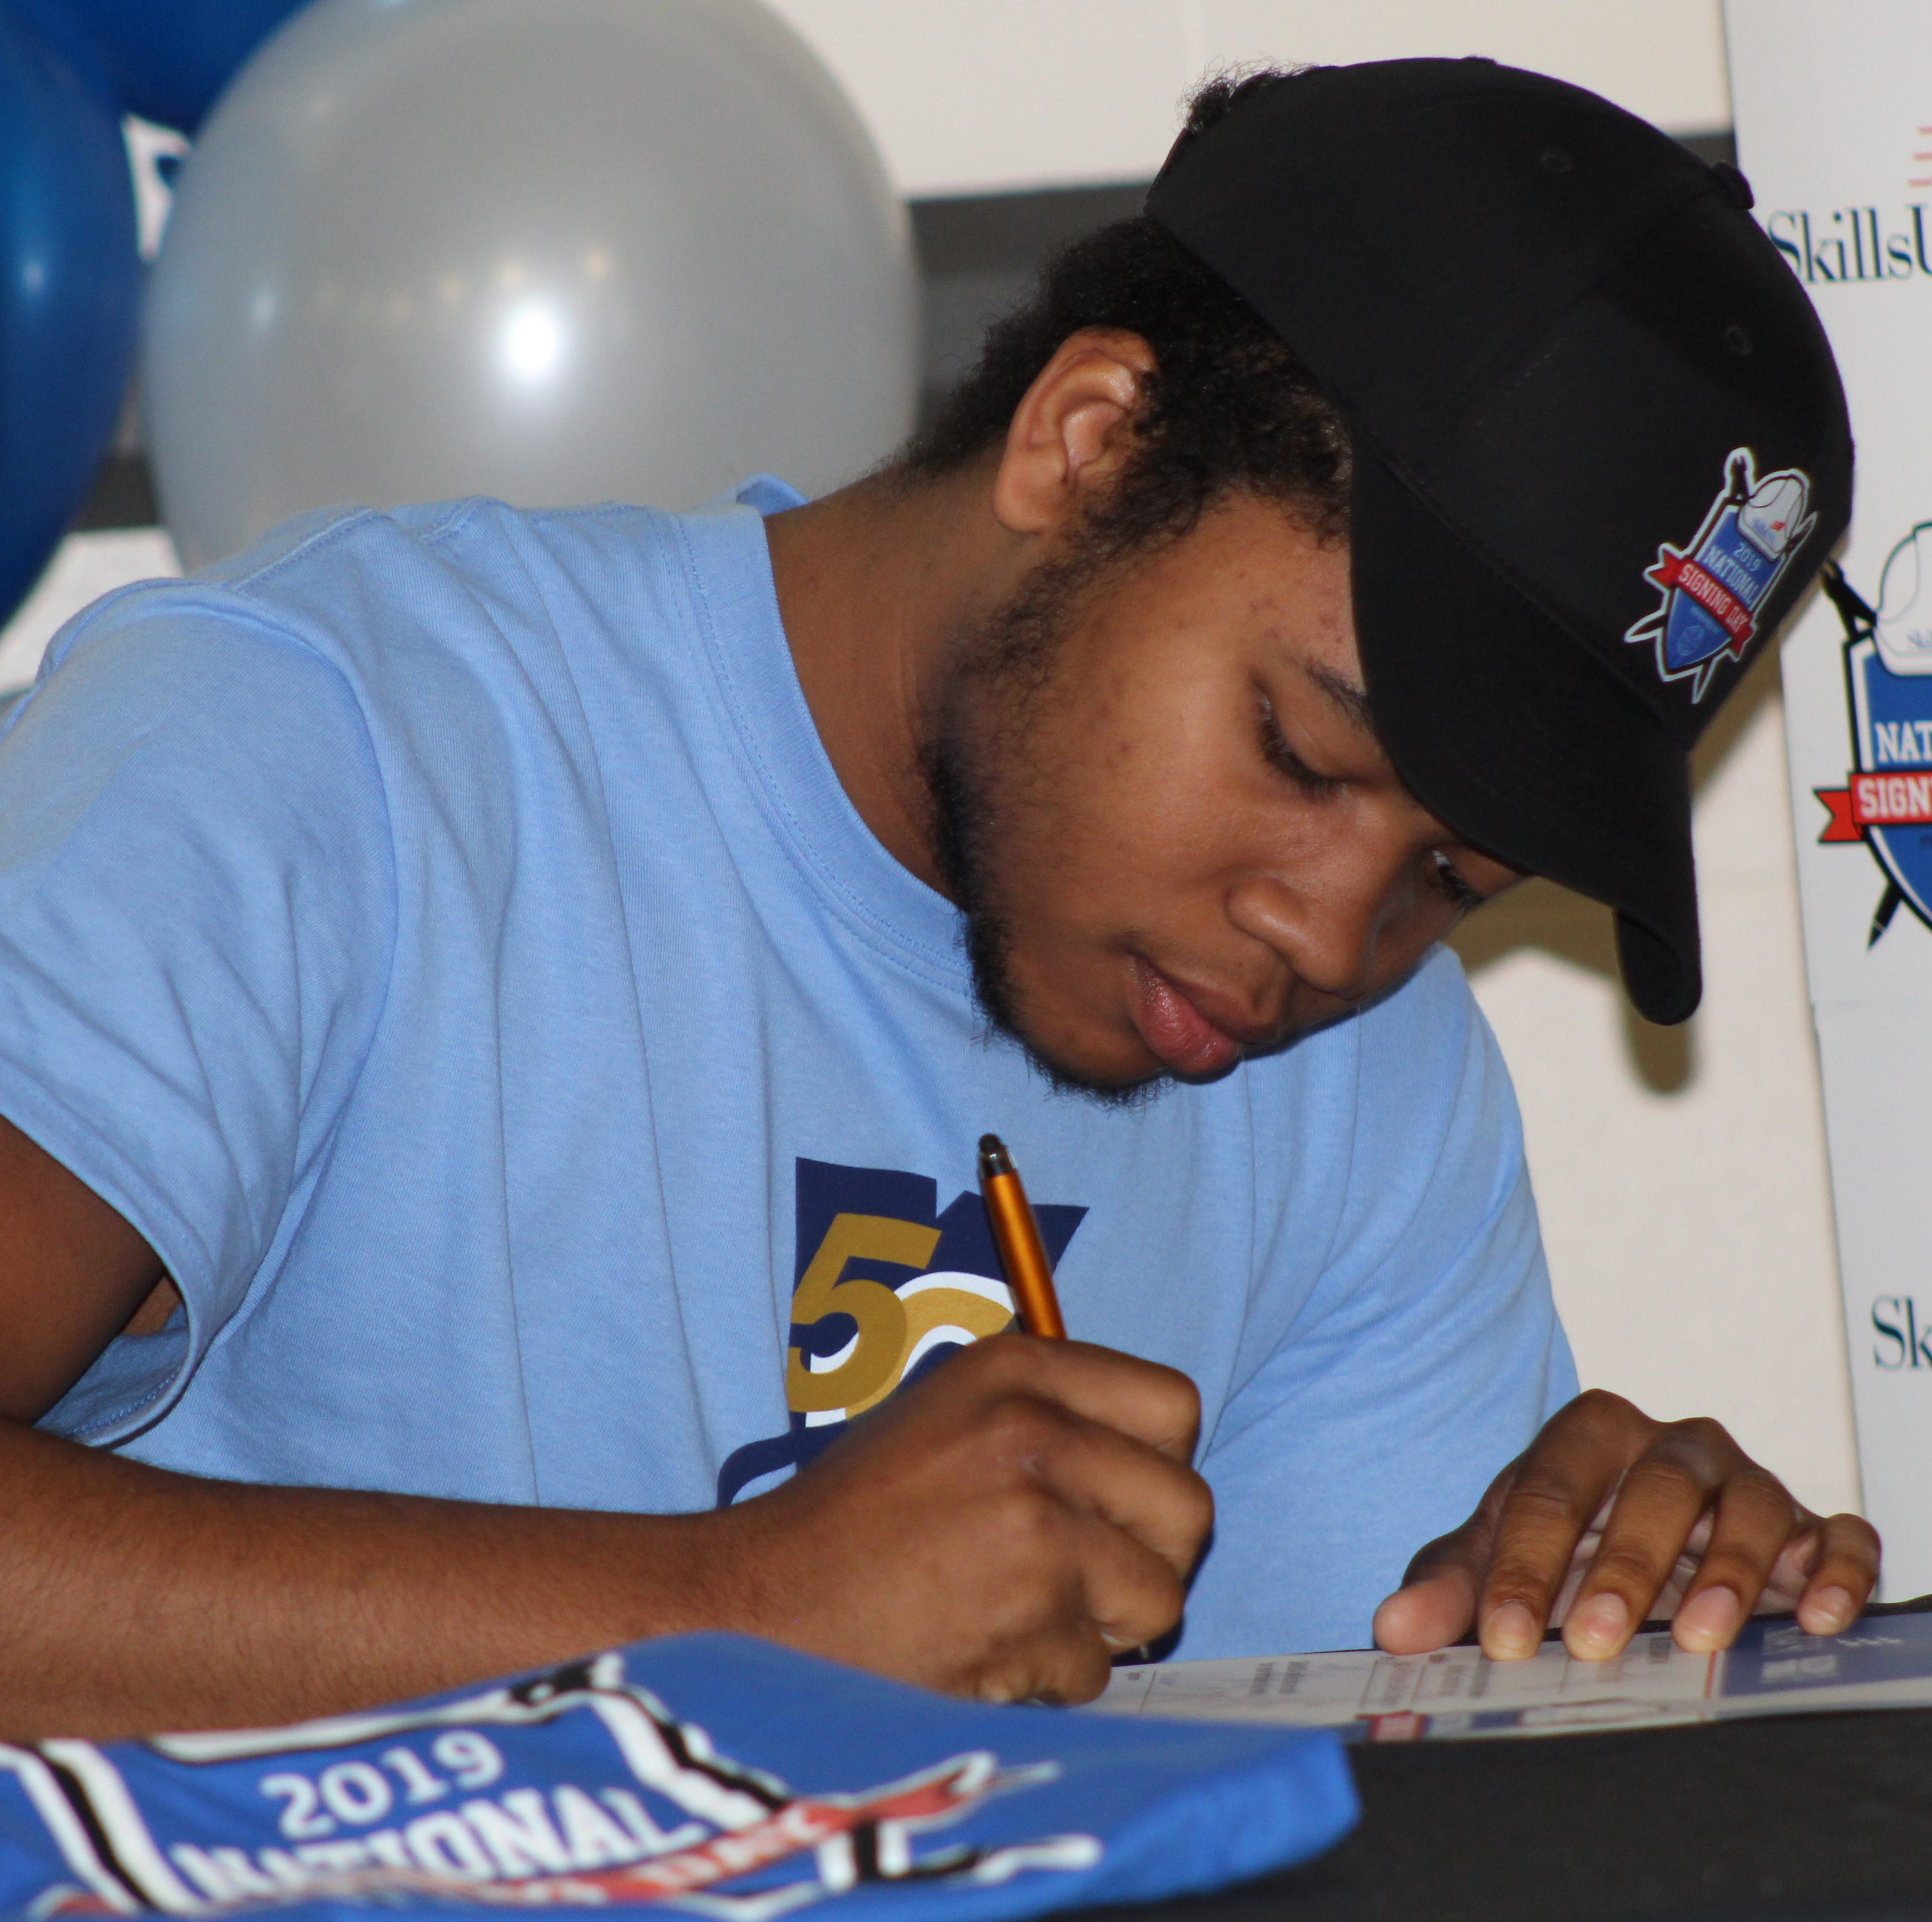 Student signing day shines spotlight on skilled trade jobs